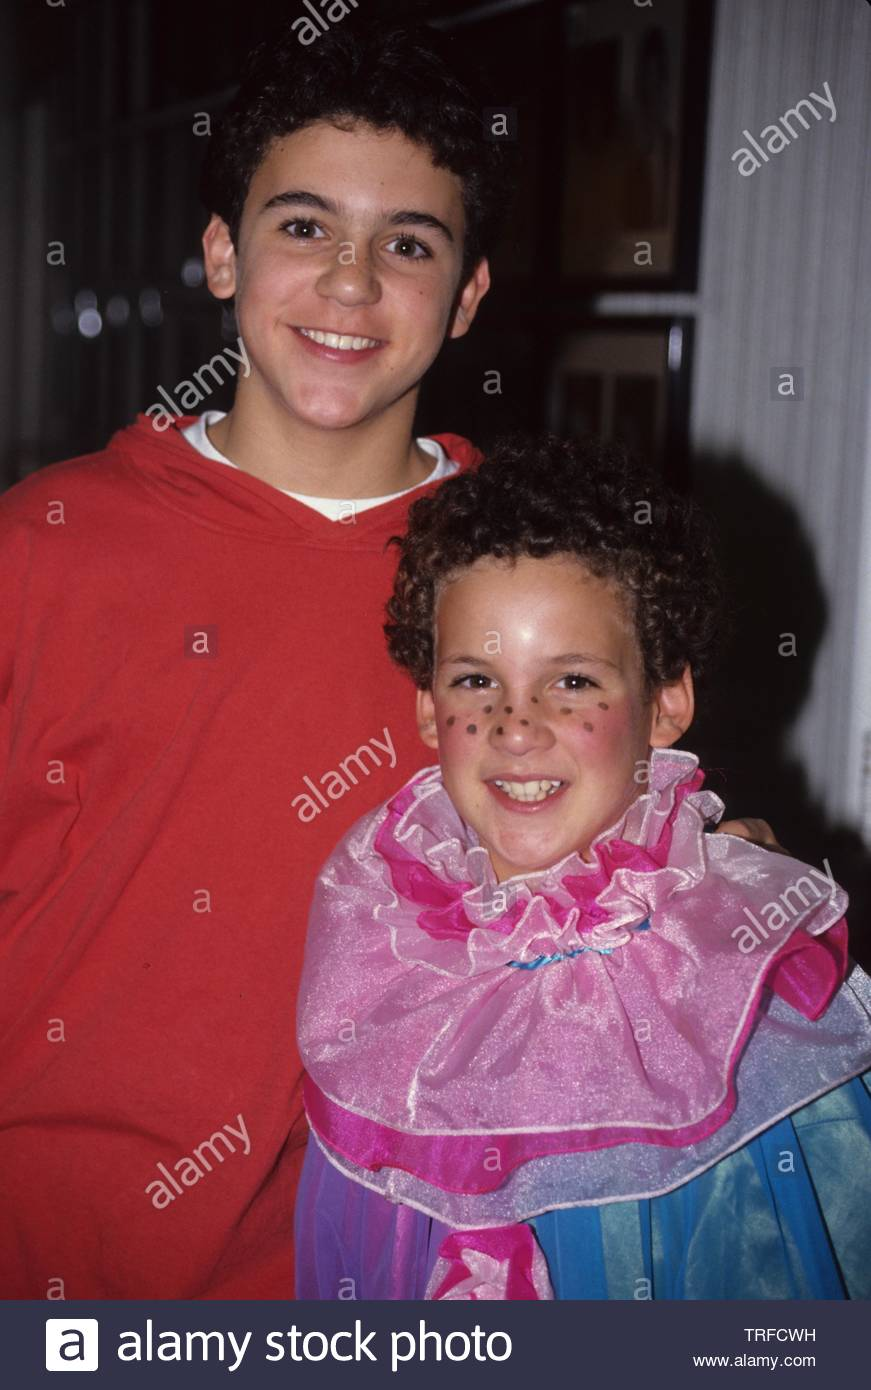 Fred Savage With Brother Ben Savage 1992 Credit 4395250globe Photos Mediapunch Stock Photo Alamy Savage was born in highland park, illinois, the daughter of joanne and lewis savage, who were an industrial real estate broker and a consultant. https www alamy com fred savage with brother ben savage 1992 credit 4395250globe photosmediapunch image255421645 html